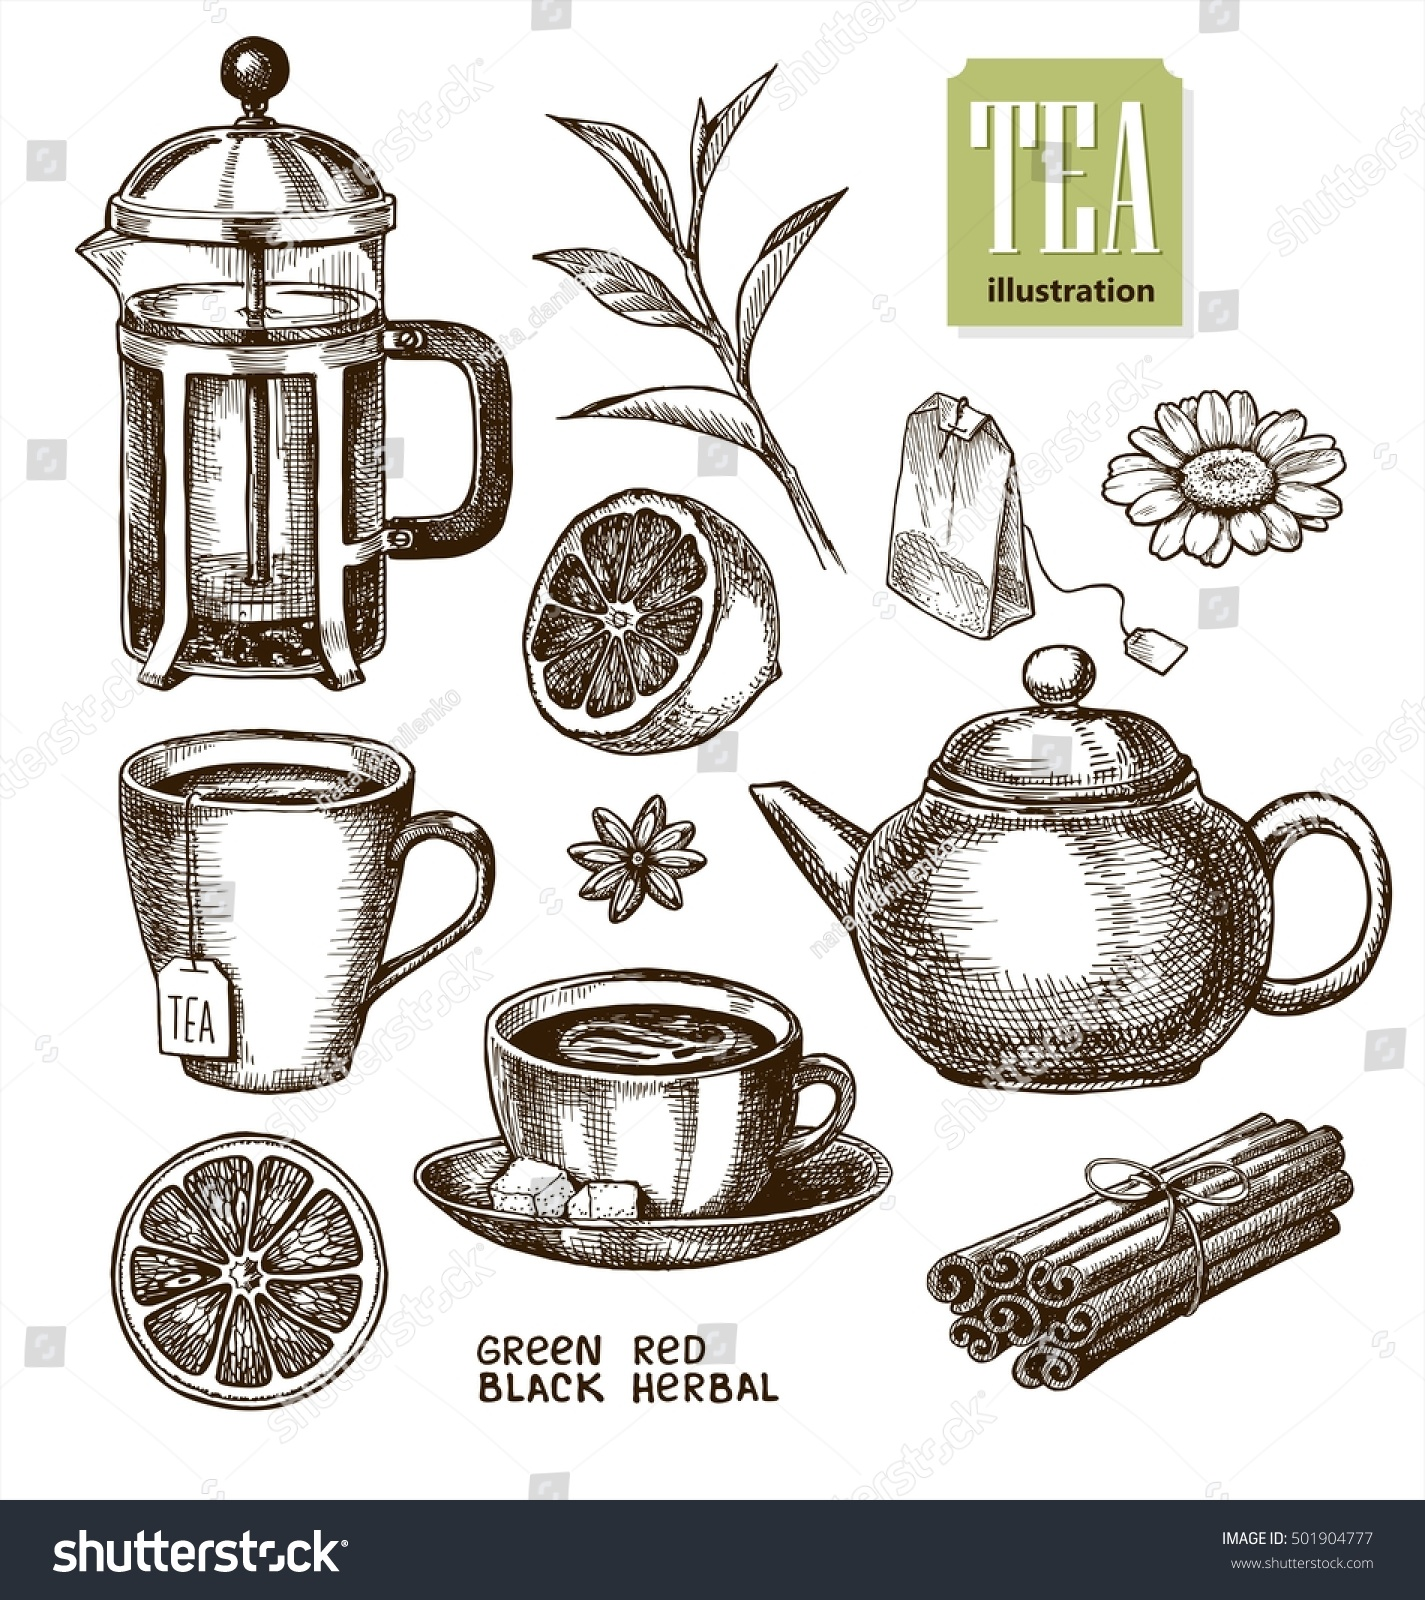 Collection of hand drawn sketches on the theme of tea